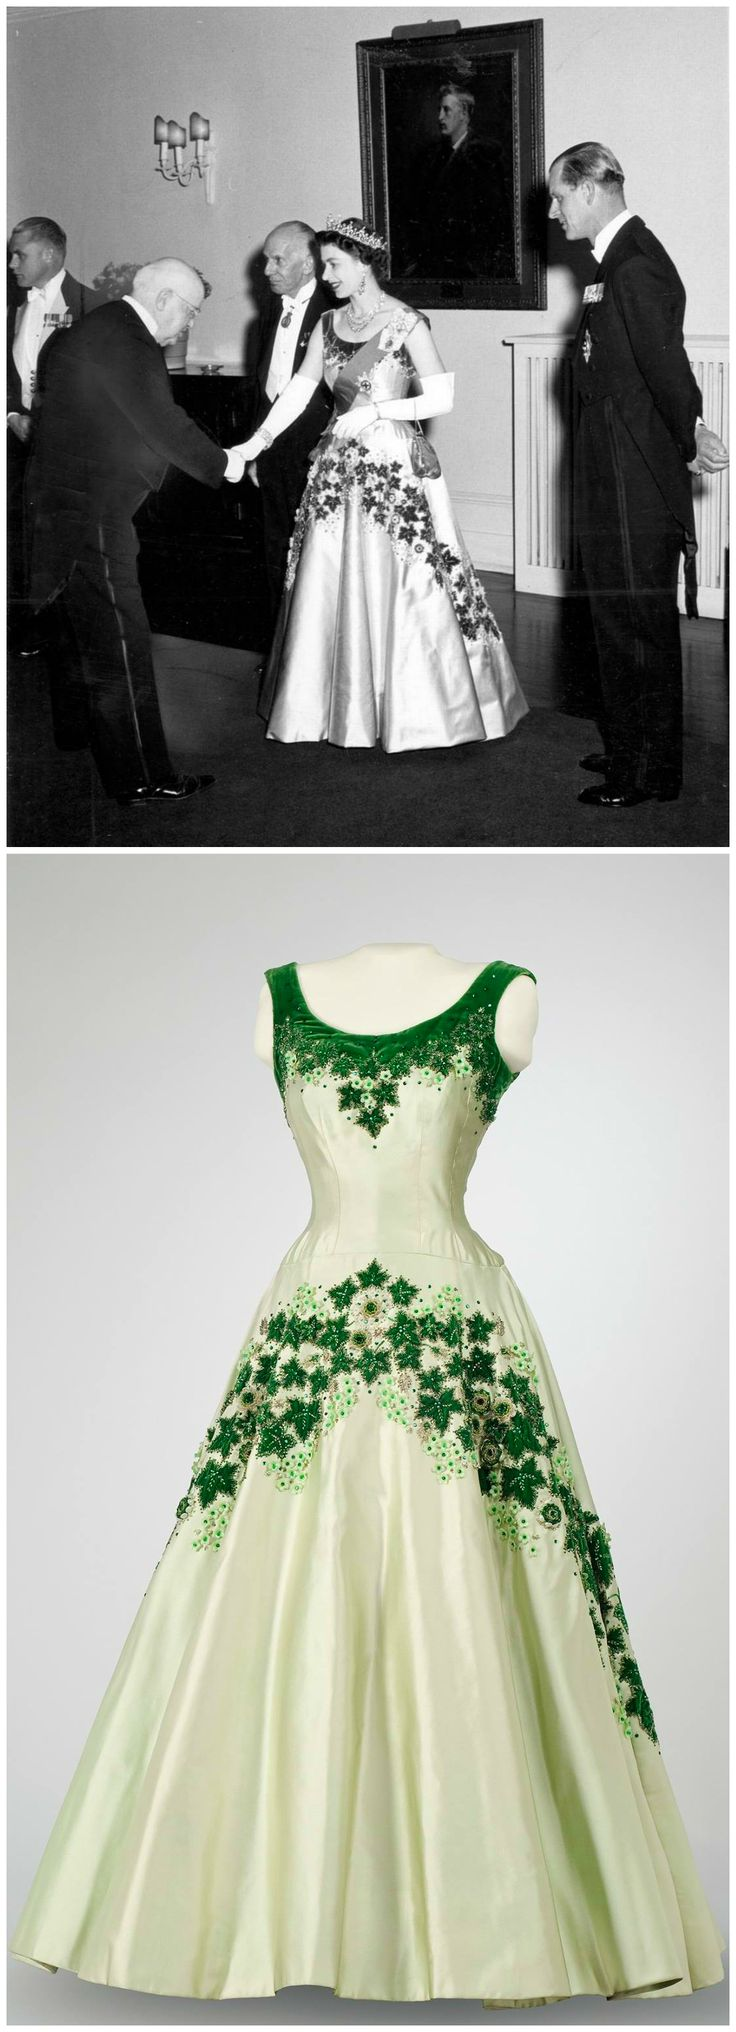 "Above: Chief Justice Patrick Kerwin greets H.M. Queen Elizabeth II, who is seen wearing the ""Maple Leaf of Canada"" dress, 1957. Photo: The Globe and Mail. Below: Queen Elizabeth's ""Maple Leaf"" dress, designed by Norman Hartnell. Collection of the Canadian Museum of History. Photo: Marie-Louise Deruaz."